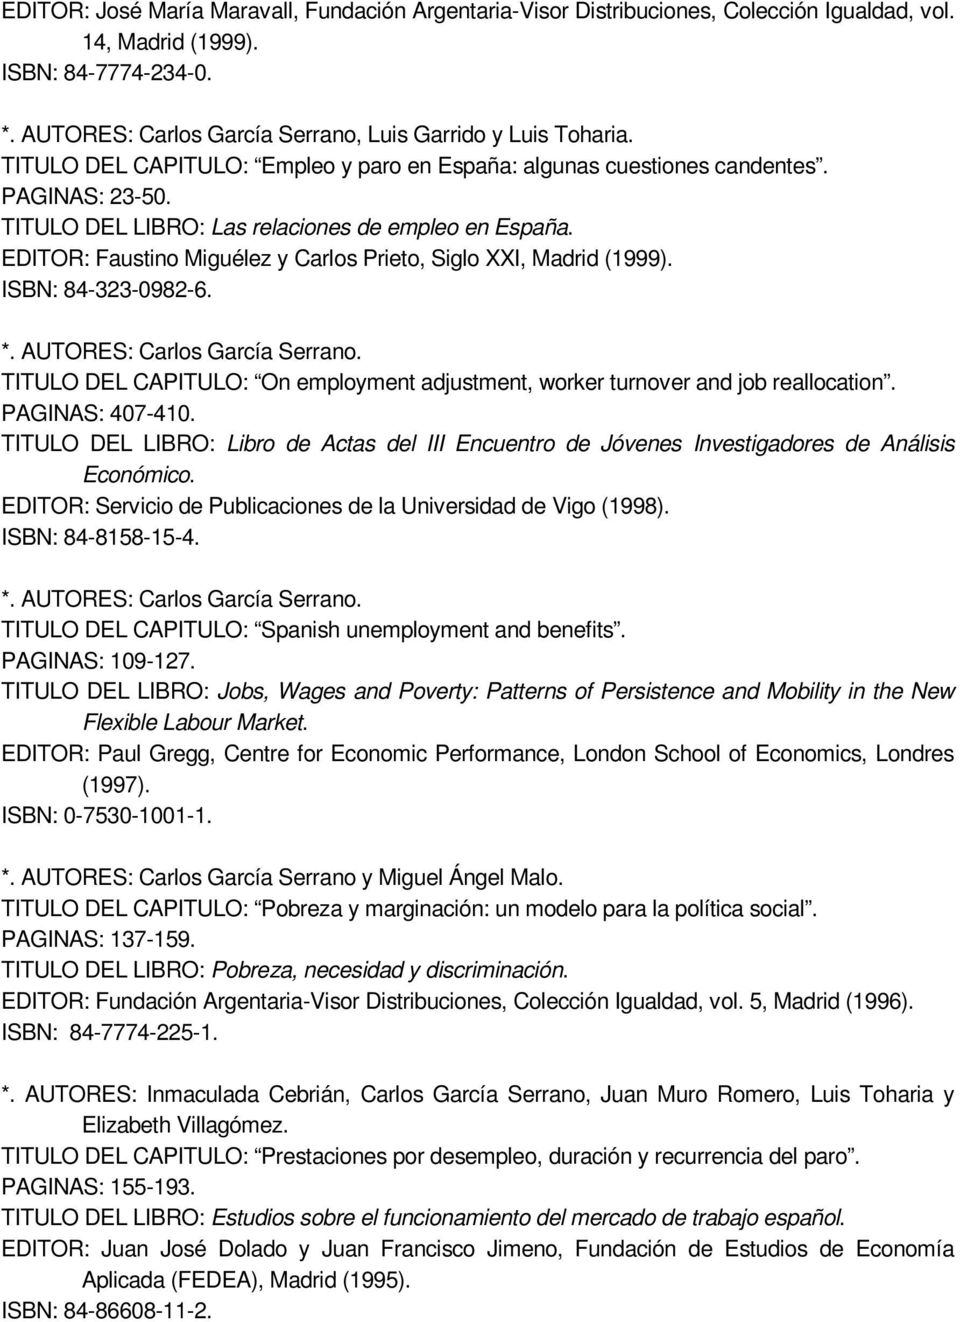 EDITOR: Faustino Miguélez y Carlos Prieto, Siglo XXI, Madrid (1999). ISBN: 84-323-0982-6. TITULO DEL CAPITULO: On employment adjustment, worker turnover and job reallocation. PAGINAS: 407-410.